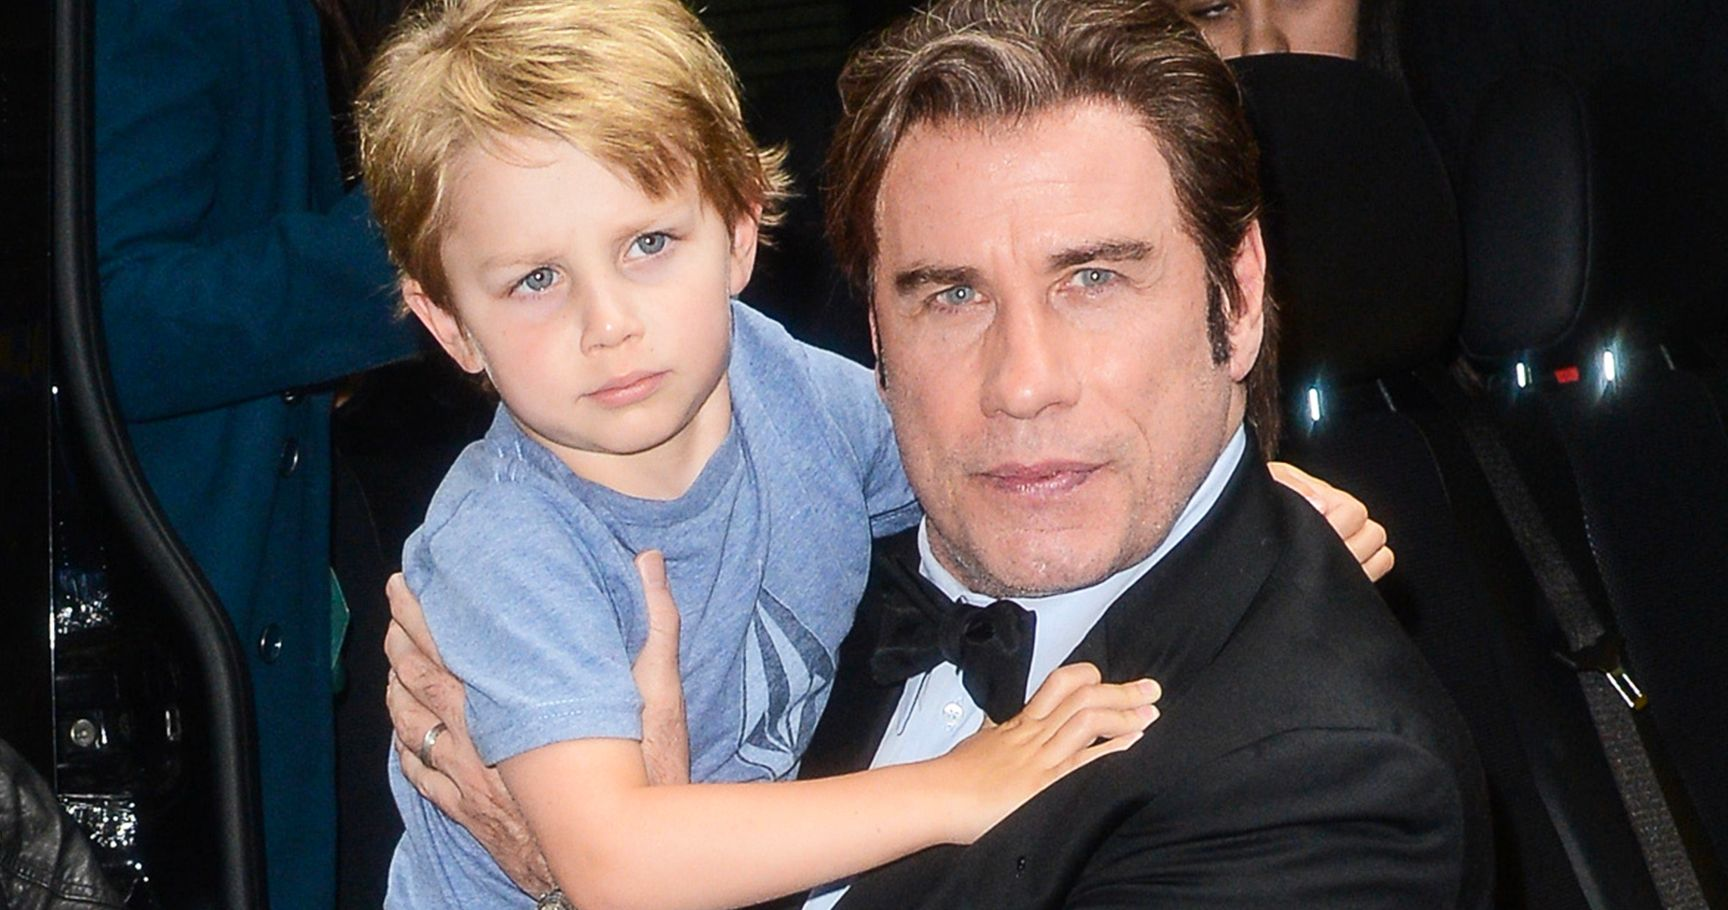 John Travolta And His Family, Then And Now (20 Pics) | Moms